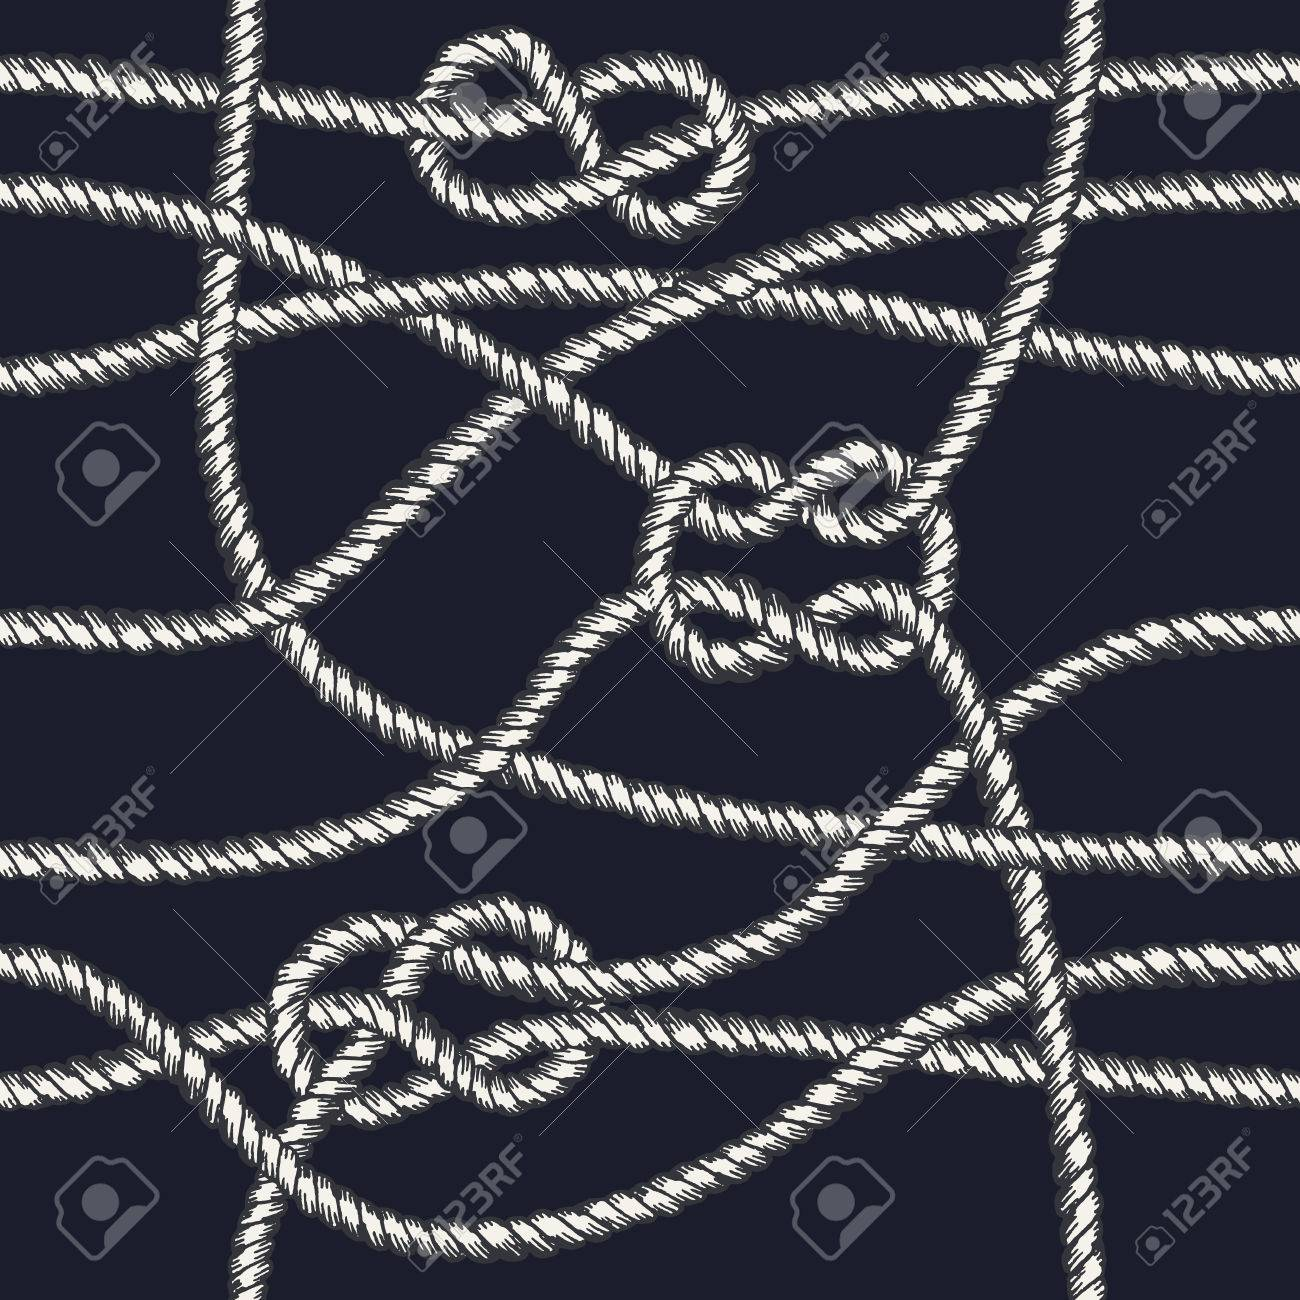 Marine Rope Knot Seamless Pattern Endless Navy Illustration With Square Diagram White Ornament And Nautical Knots